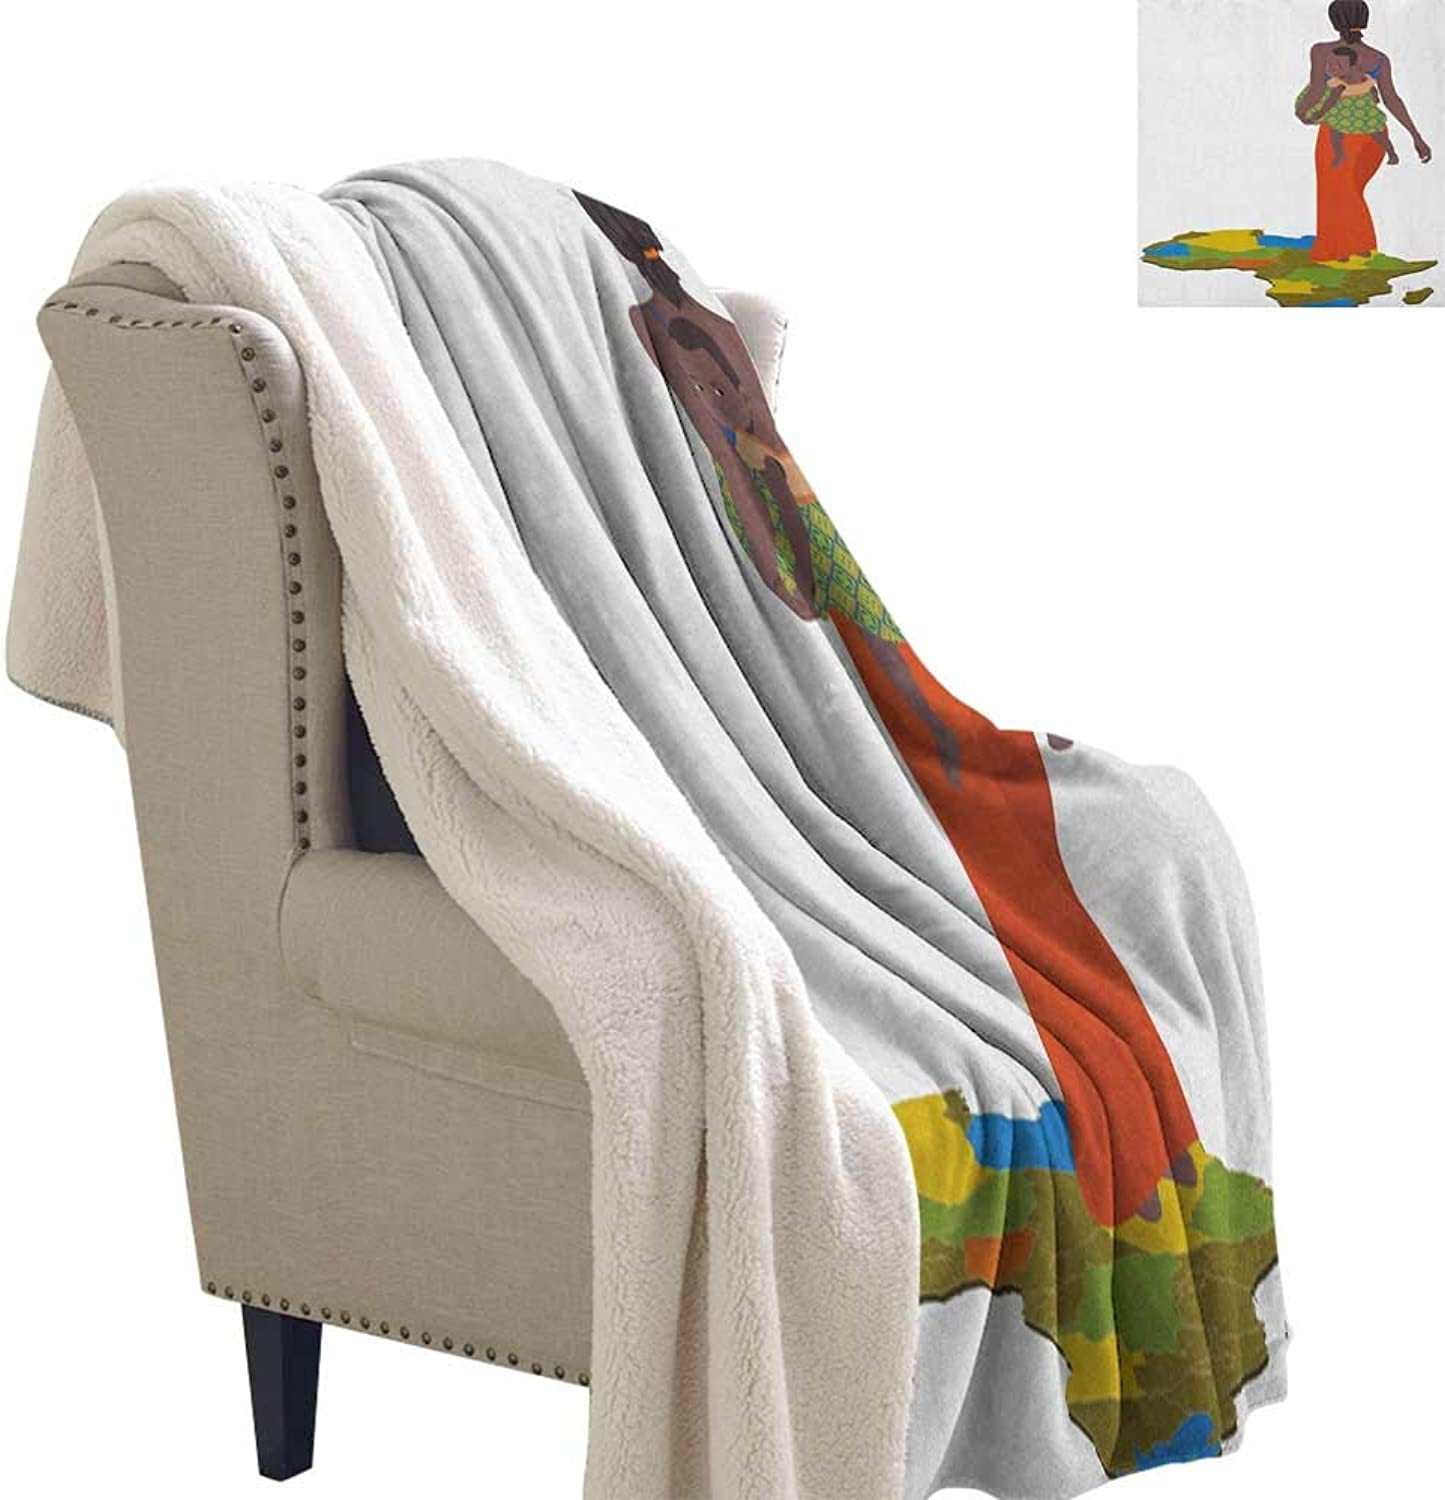 Suchashome African Woman Cozy All-Season Berber Fleece Throw Blanket Mother Carrying Baby Girl on Her Back Africa Country Culture Continent Map Lightweight Blanket 60x32 Inch Multicolor